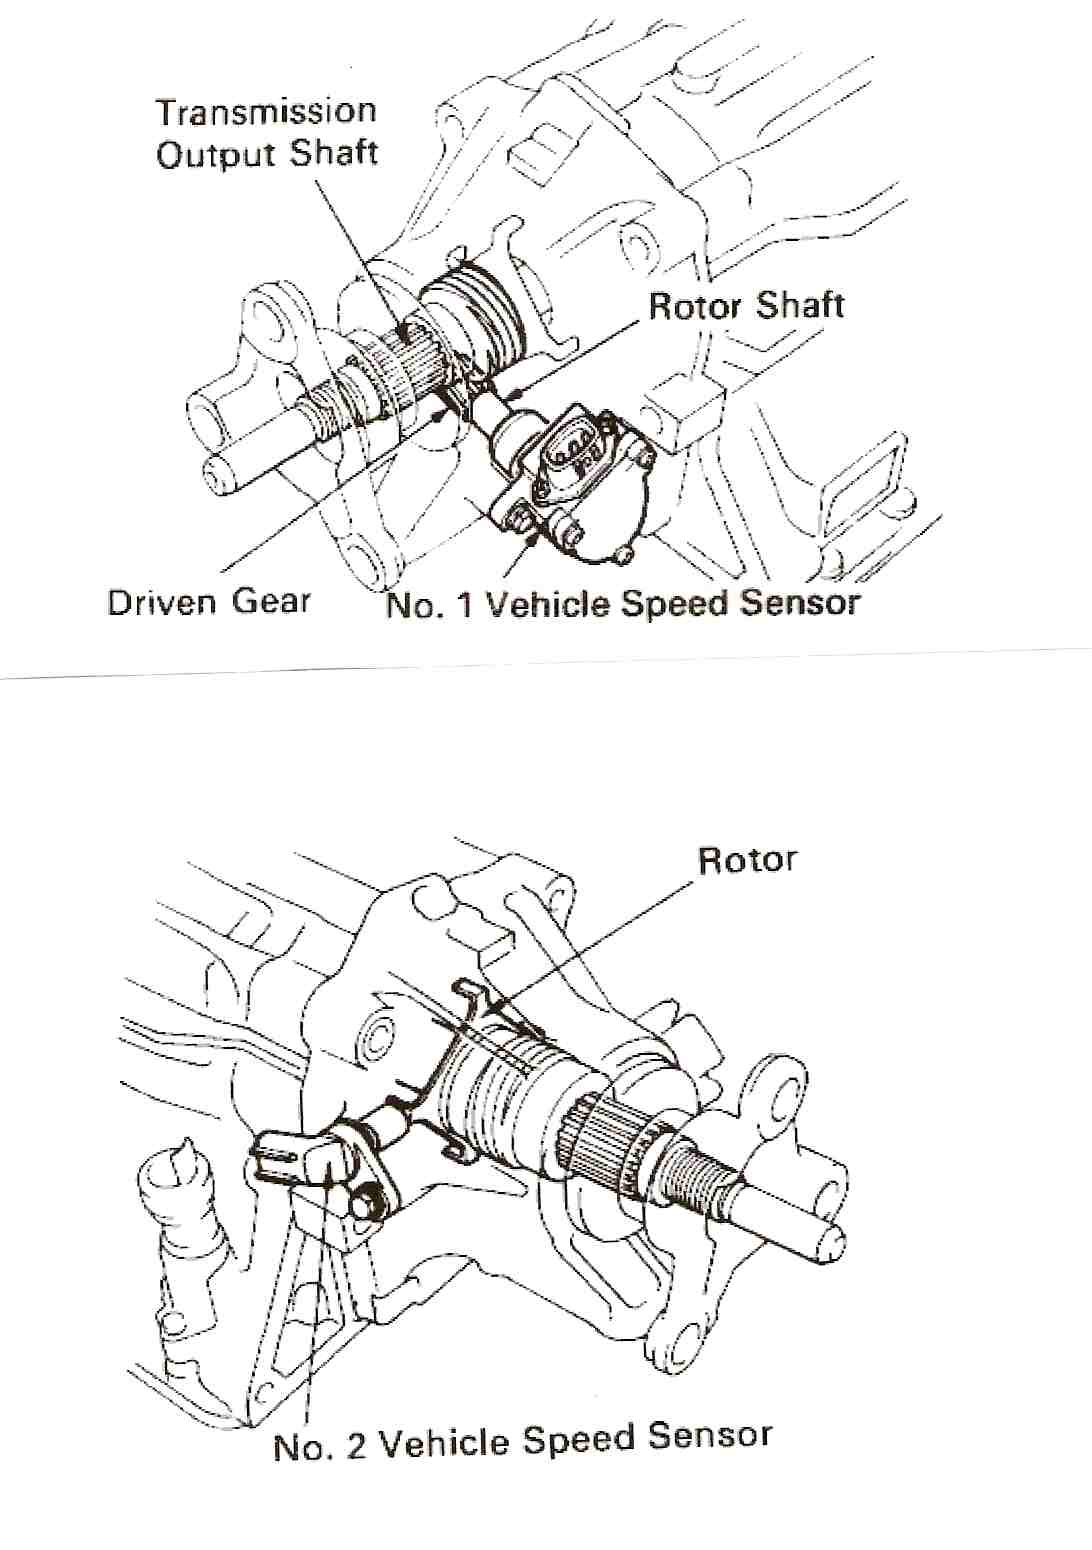 on a 1991 lexus ls 400 where is the speed sensor located they are both located on the rear of the transmission i would say xxxxx on the scale i will send some diagrams and